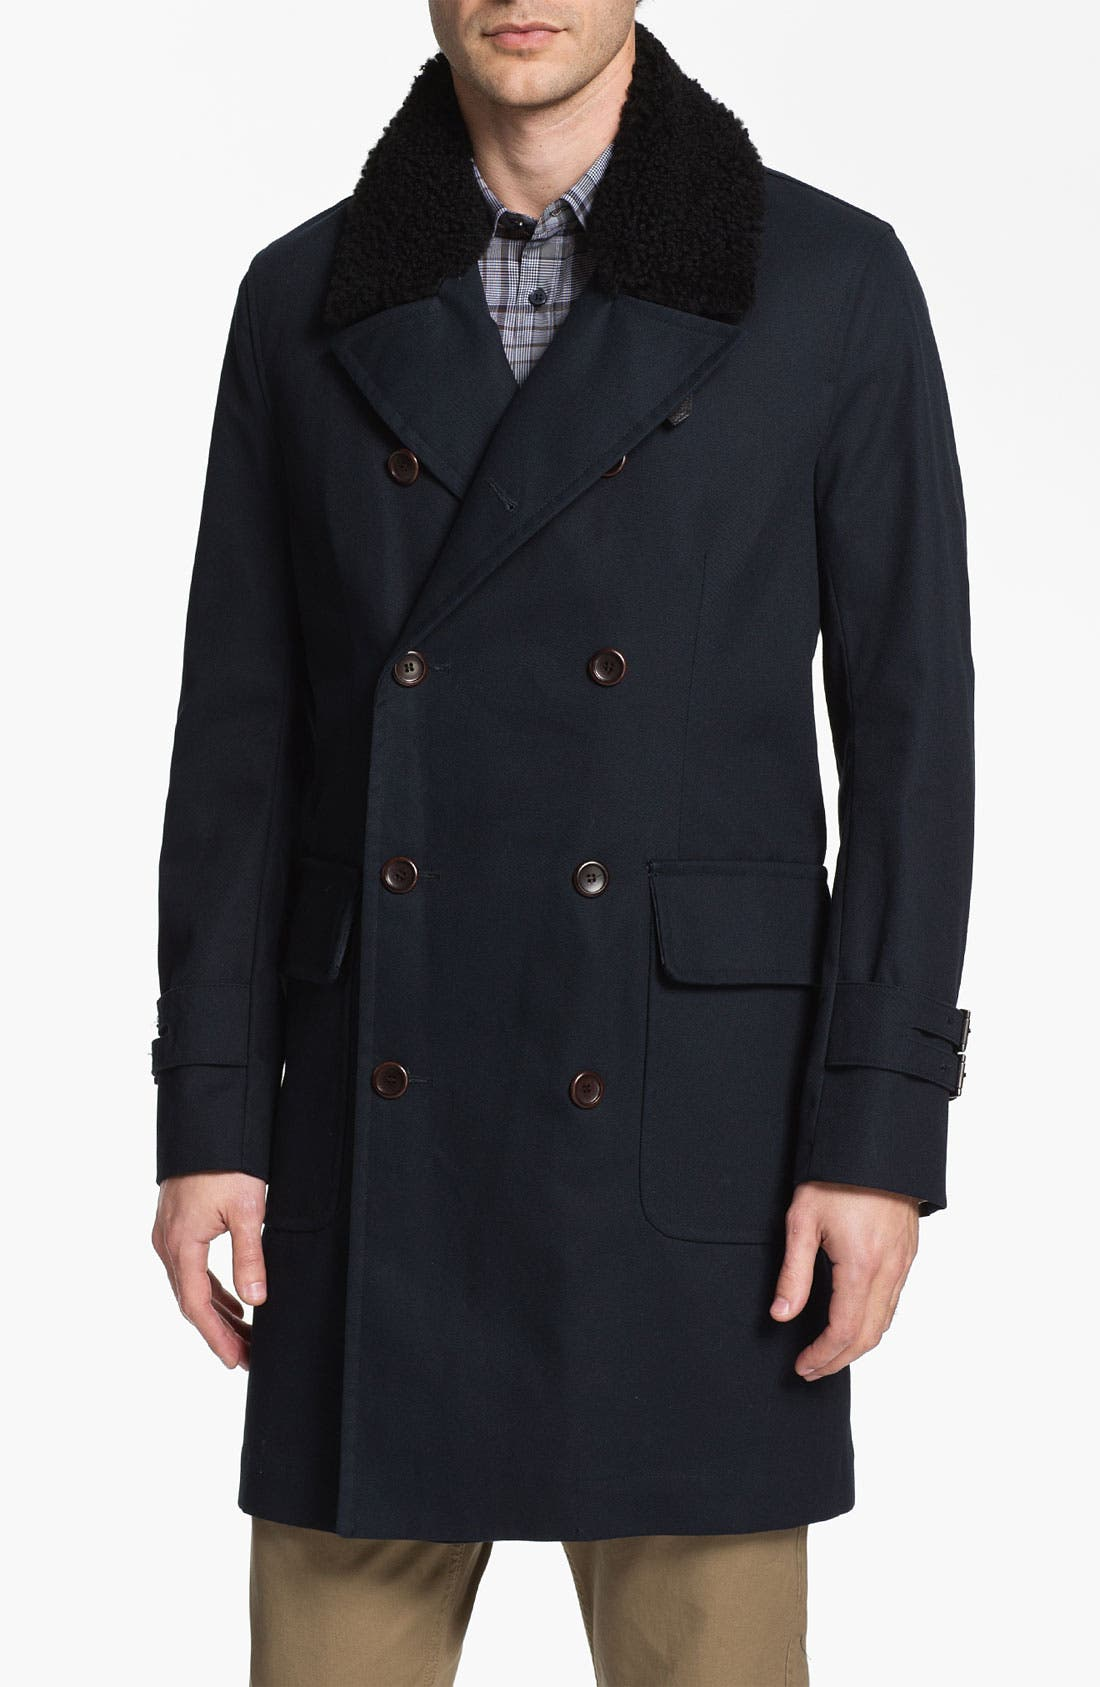 Main Image - PLECTRUM by Ben Sherman Double Breasted Overcoat